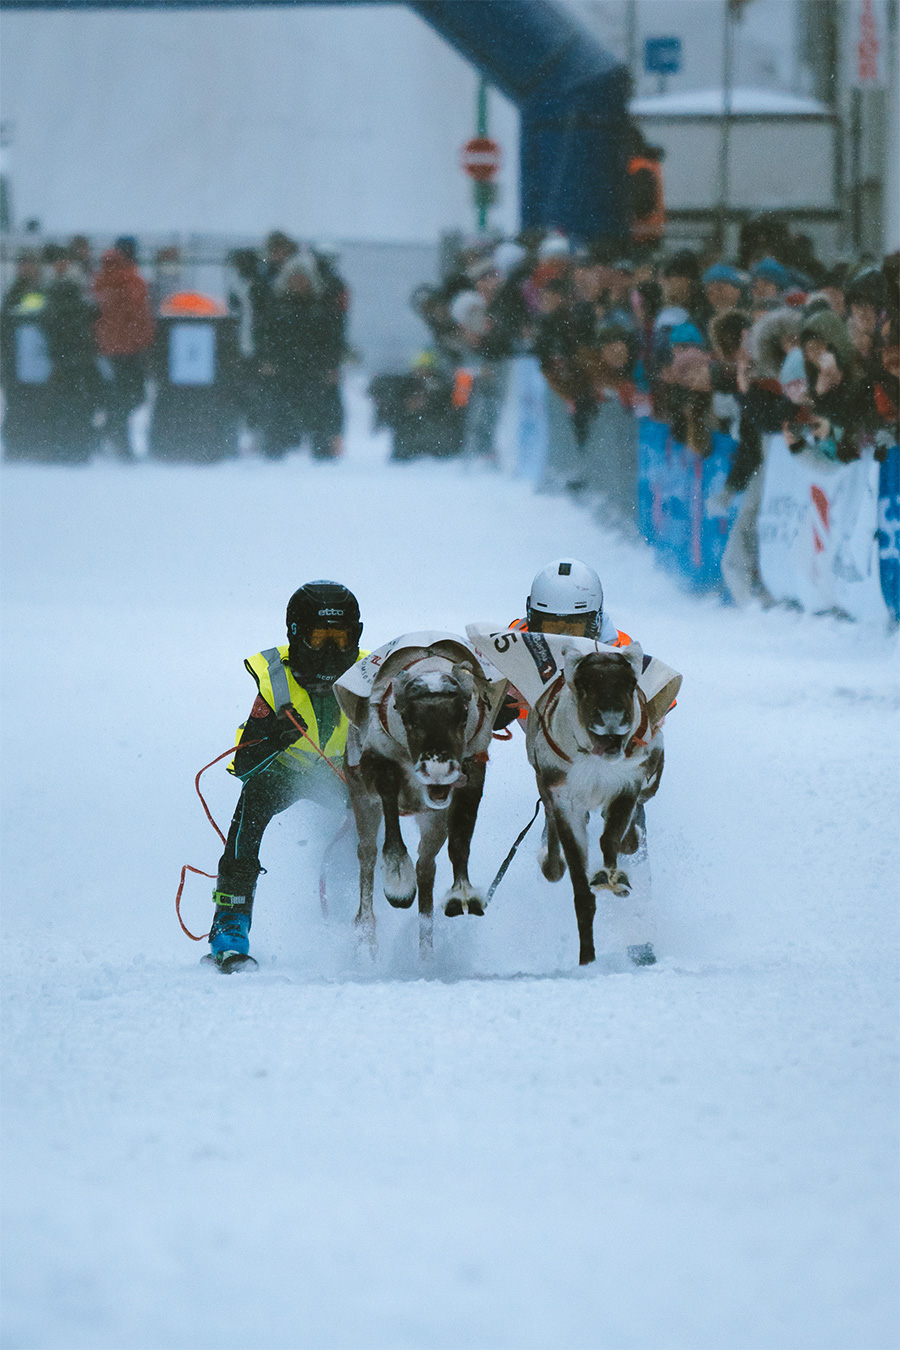 Reindeers and their riders skiing through Storgata in Tromsø